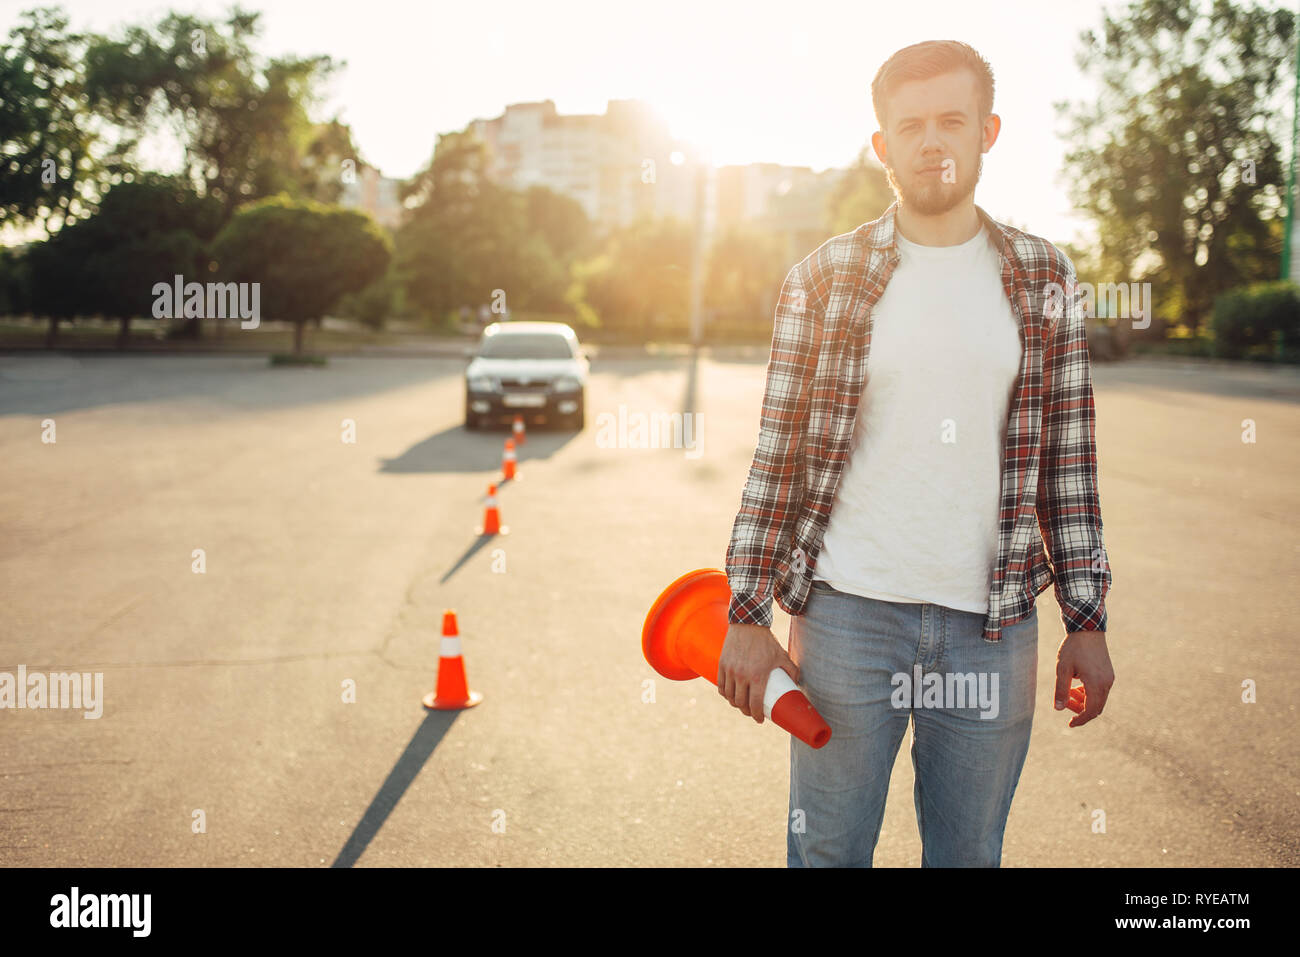 Instructor sets the cone, driving school concept Stock Photo